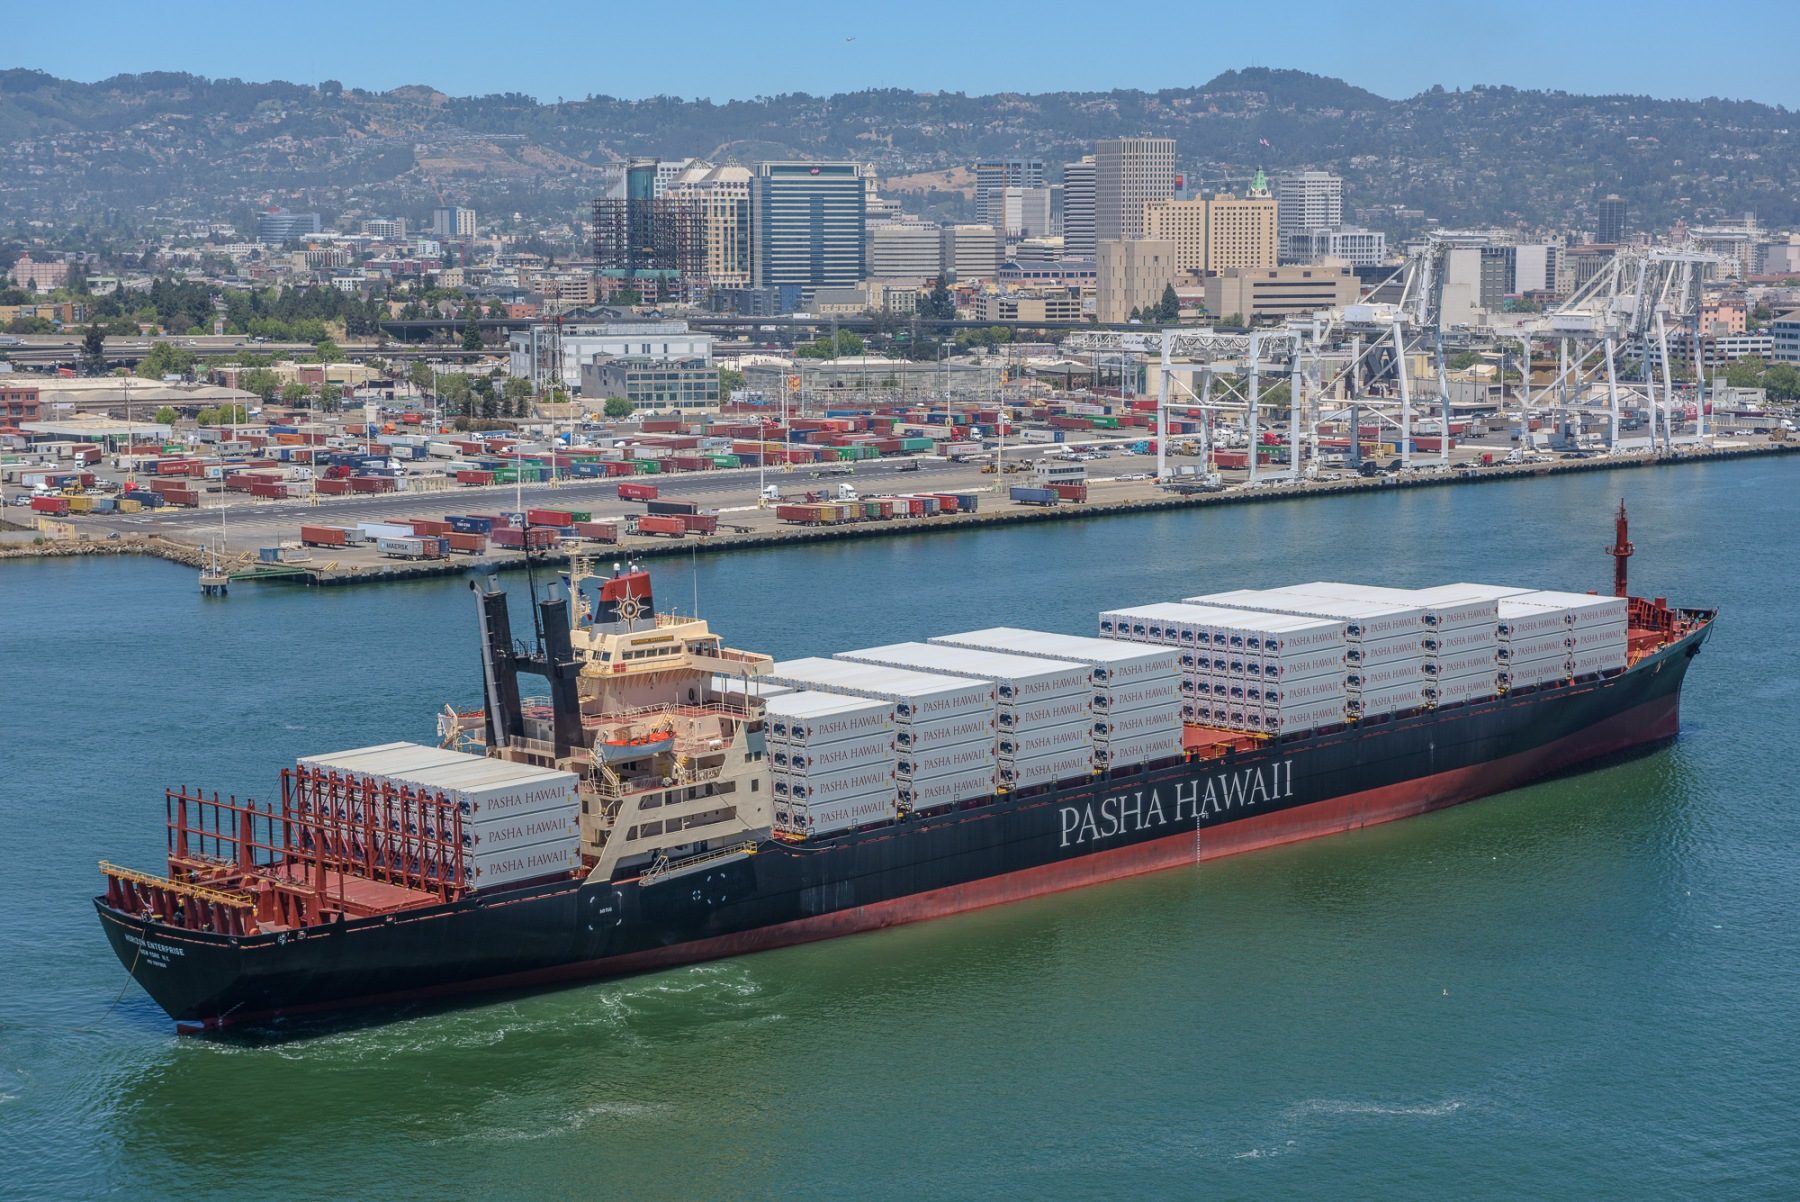 6-13-18_Pasha Hawaii Receives New Refrigerated Containers_Nick_Souza_2.jpg